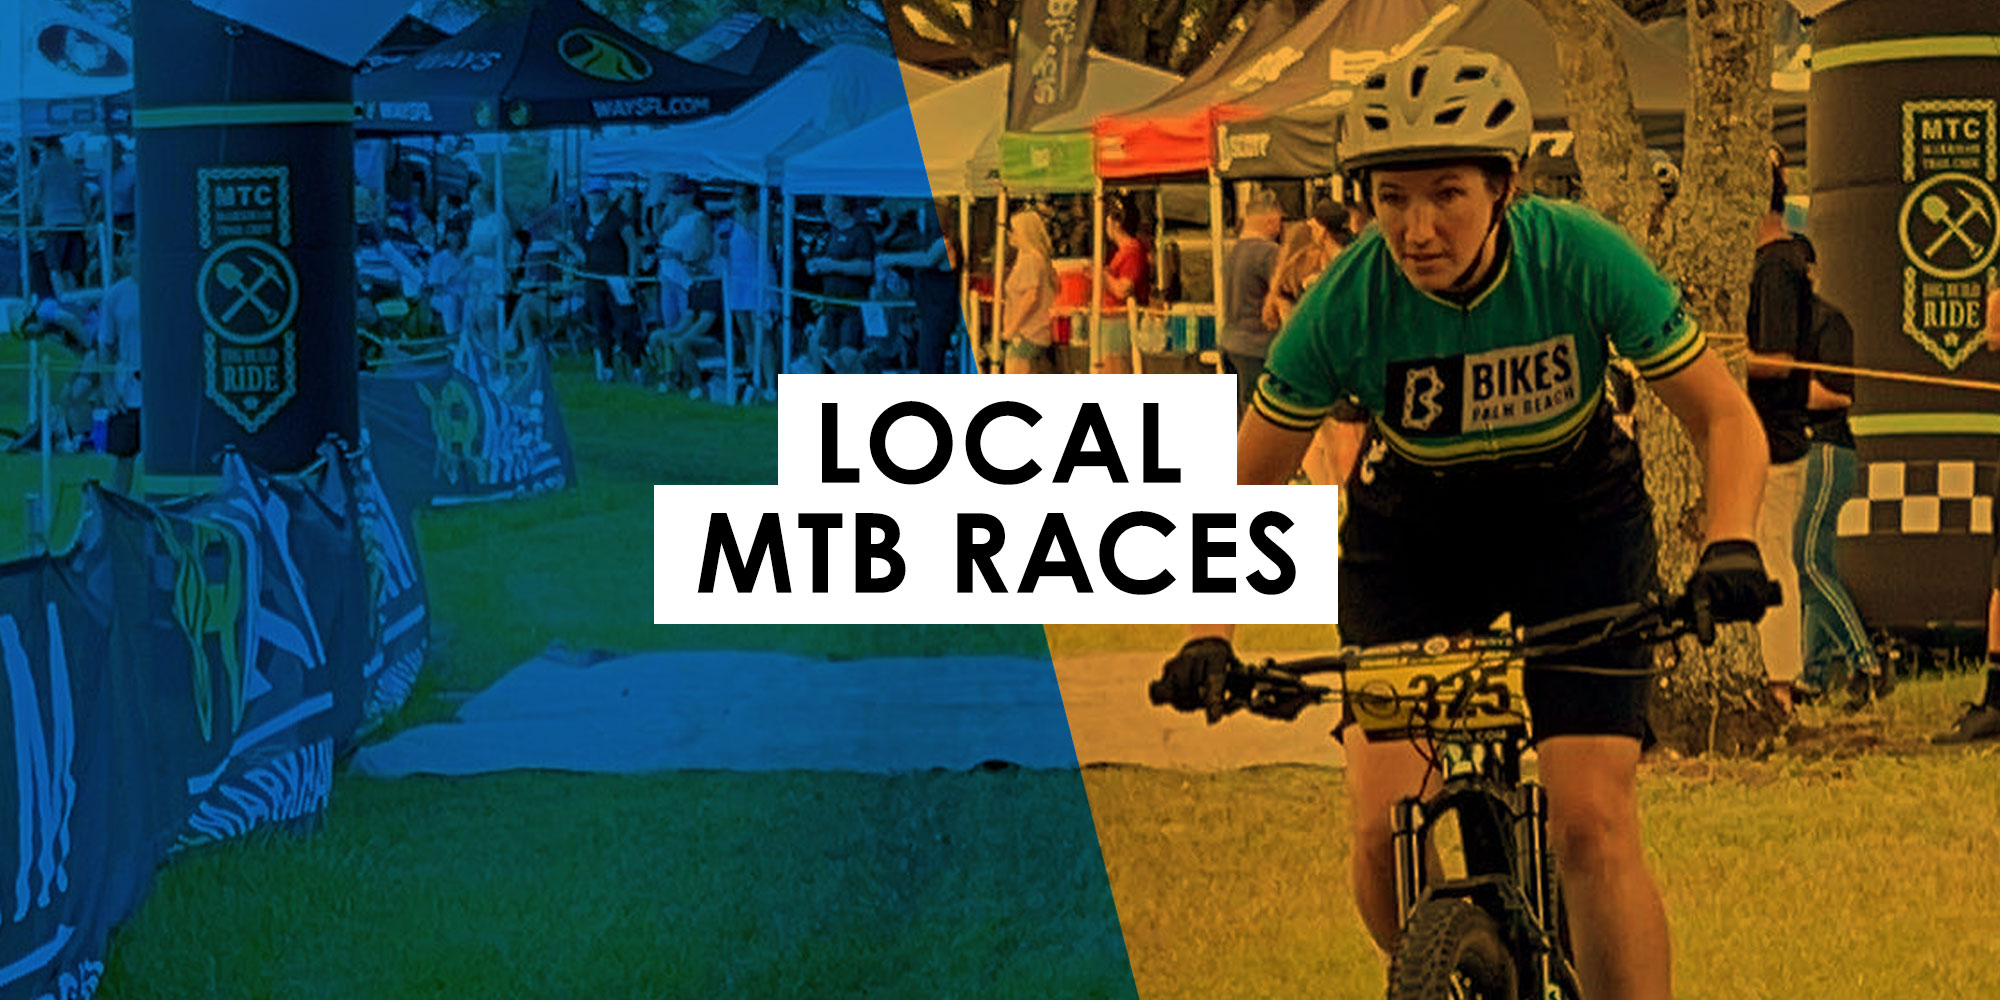 Local beginner-friendly MTB races are coming up!